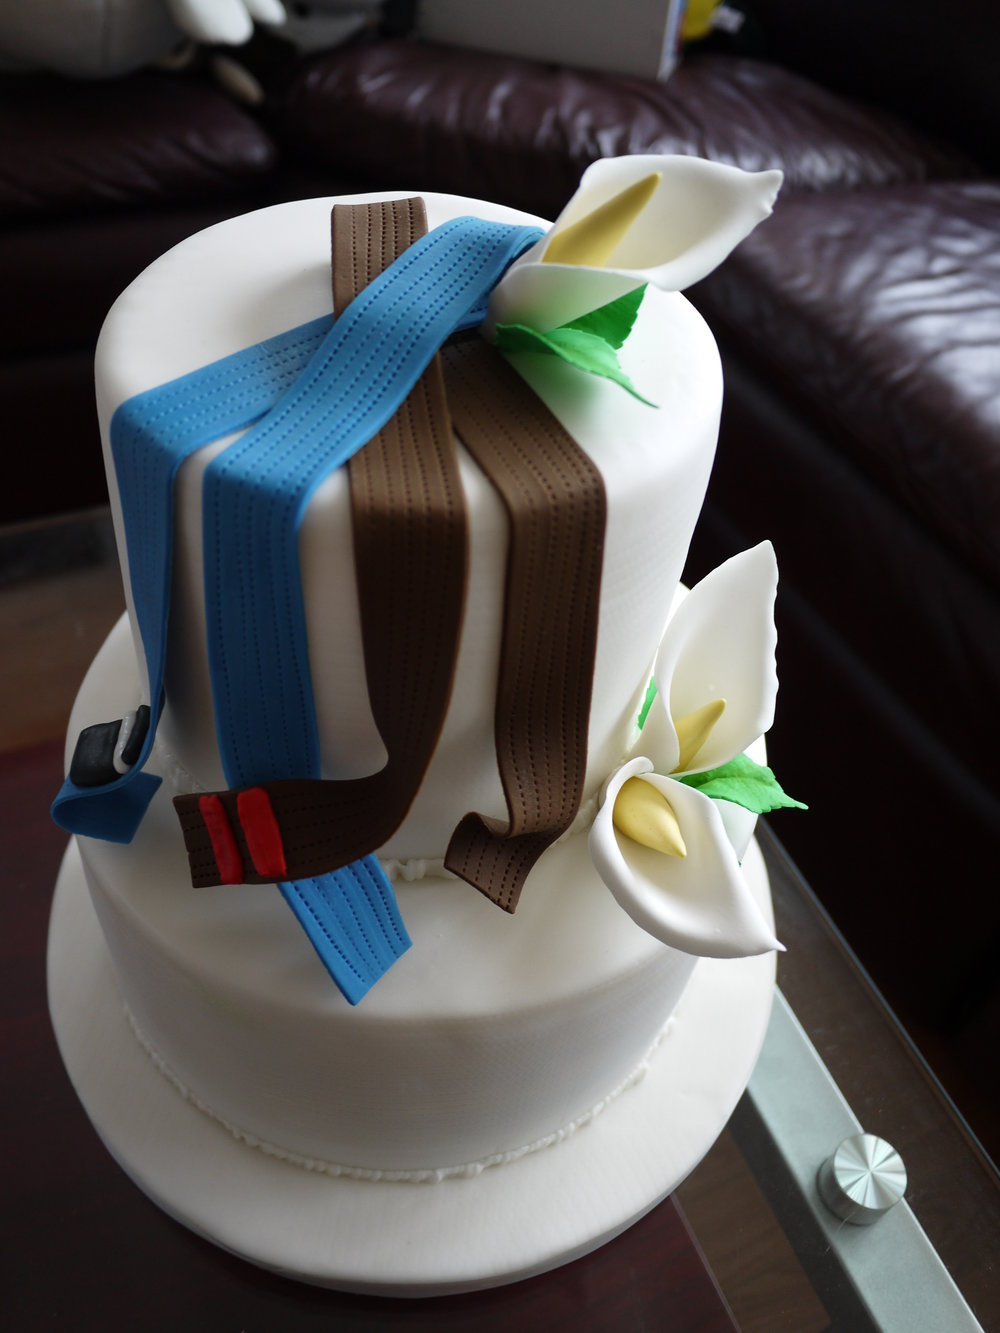 Jujitsu Belts - Diana and Ben asked us to create a groom's cake to go alongside the cake being provided by their wedding venue. At the time, Diana was a brown belt in jujitsu and Ben was a blue belt in Brazilian jujitsu. Made with sugar are the belts and calla lilies that top the two-tier cake.Delivered: July 7, 2012